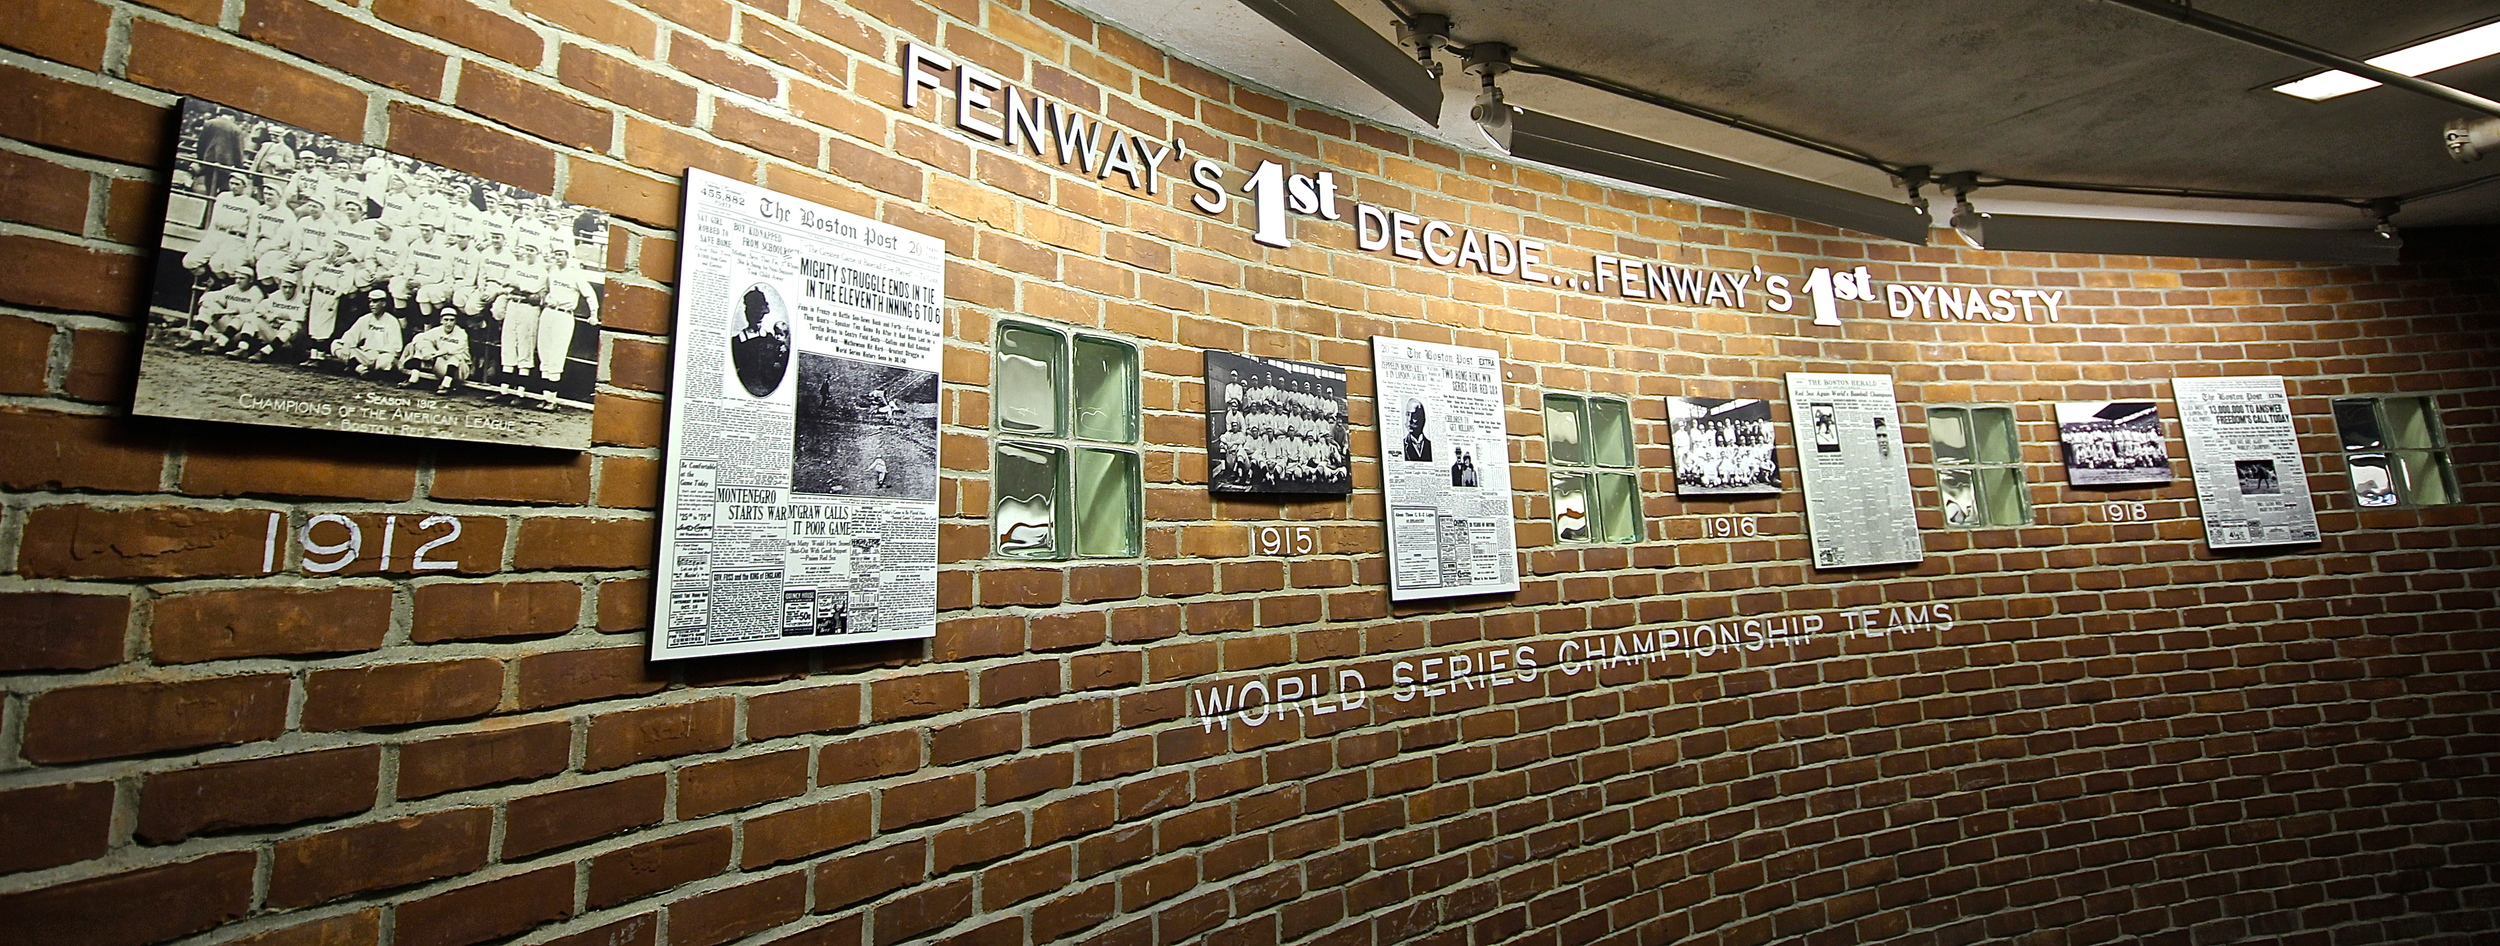 Fenway's first decade